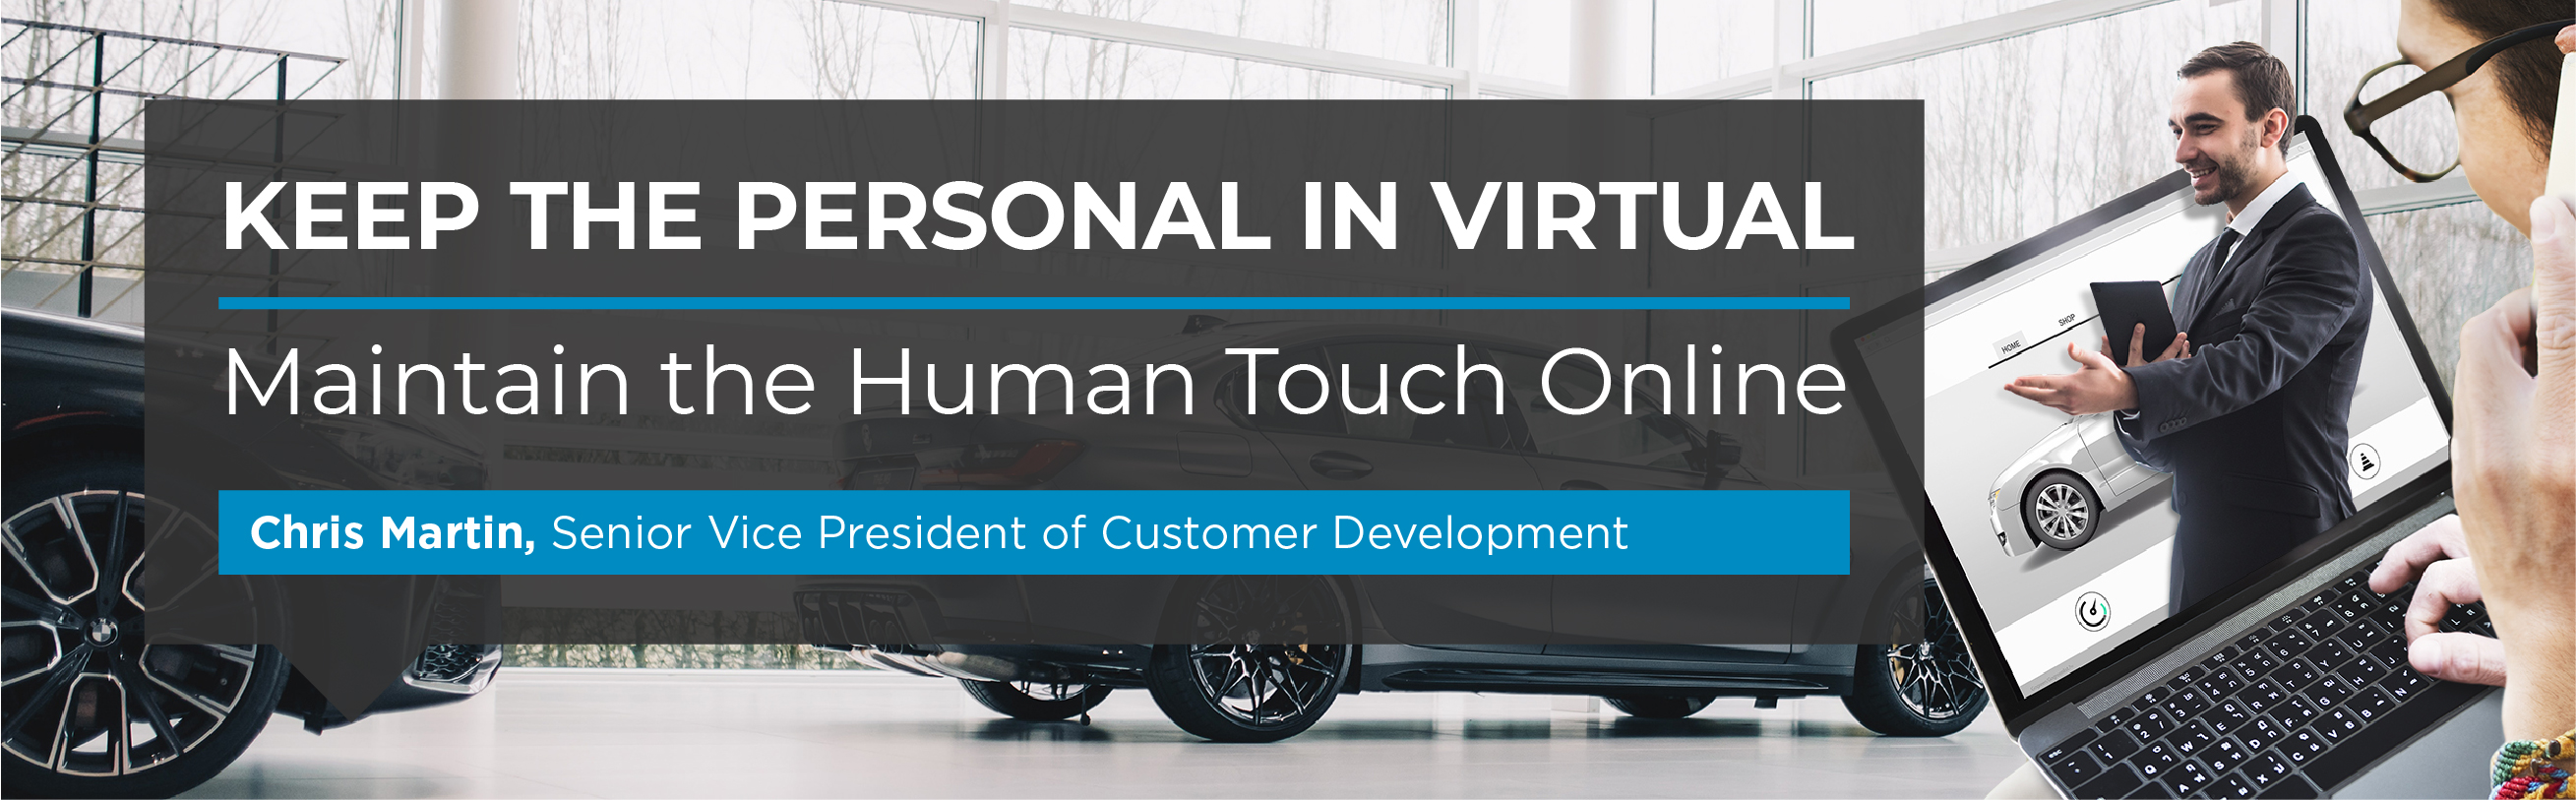 Keep the Personal in Virtual: Maintain the Human Touch Online